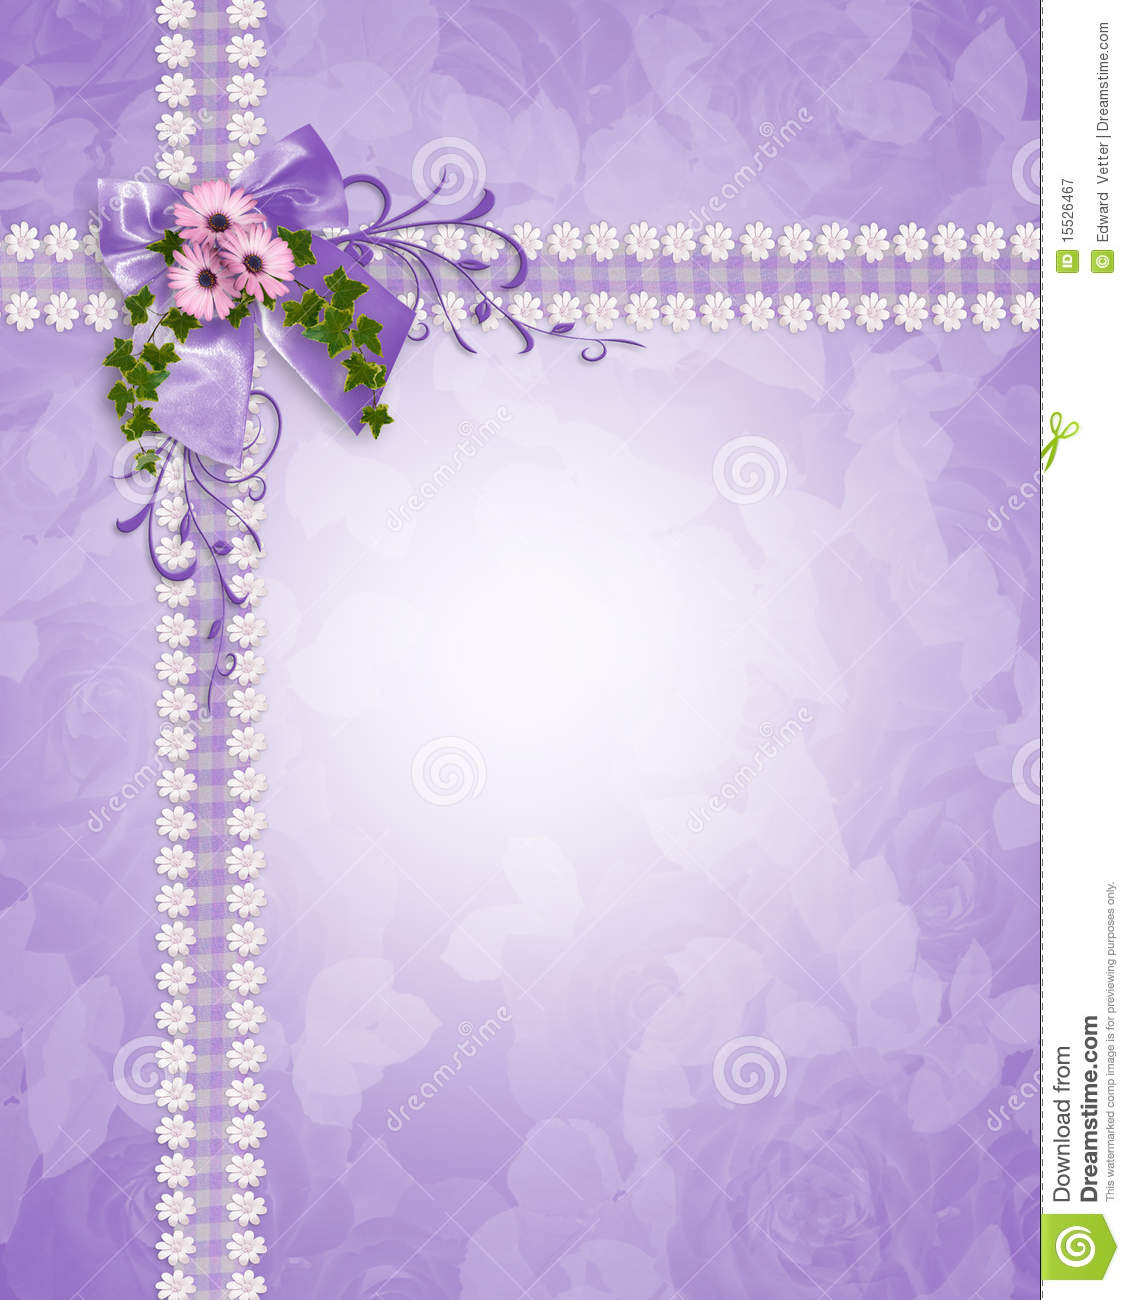 Purple Wedding Background Wedding invitation lavender